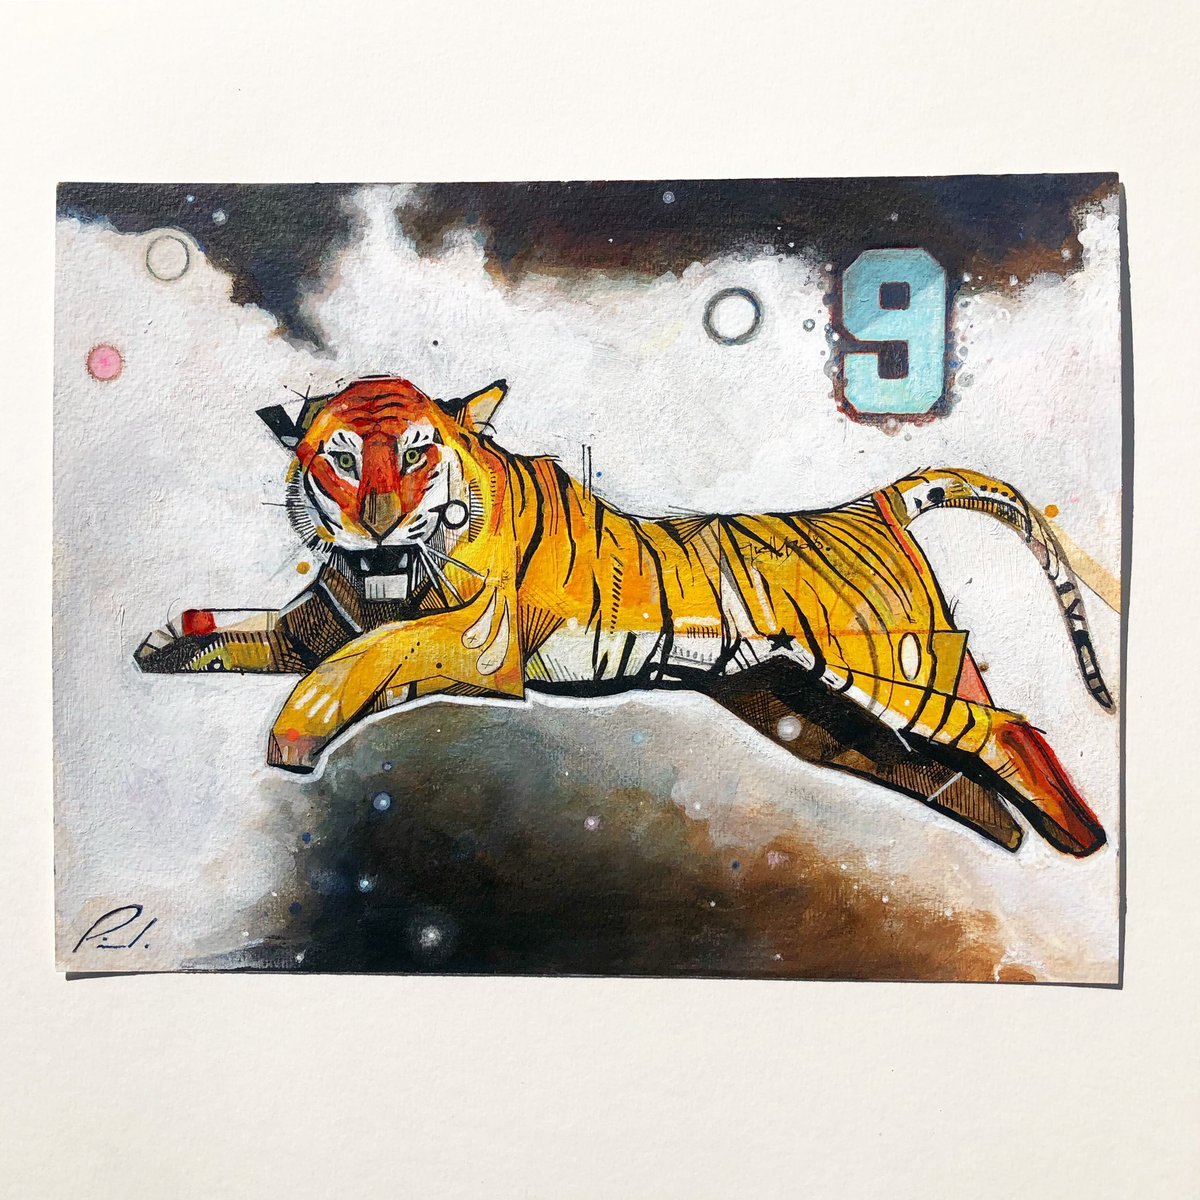 Untitled  8x12 Mixed media on paper I will be making some stickers of just the tiger. So stay tuned 🤙🏼😎 🐅  . . . #tiger #untitled #abstractart #art #mixedmedia #paper #art #nine #nueve #eyeofthetiger #stickers #comingsoon #staytuned #contemporary #modern #contemporaryart